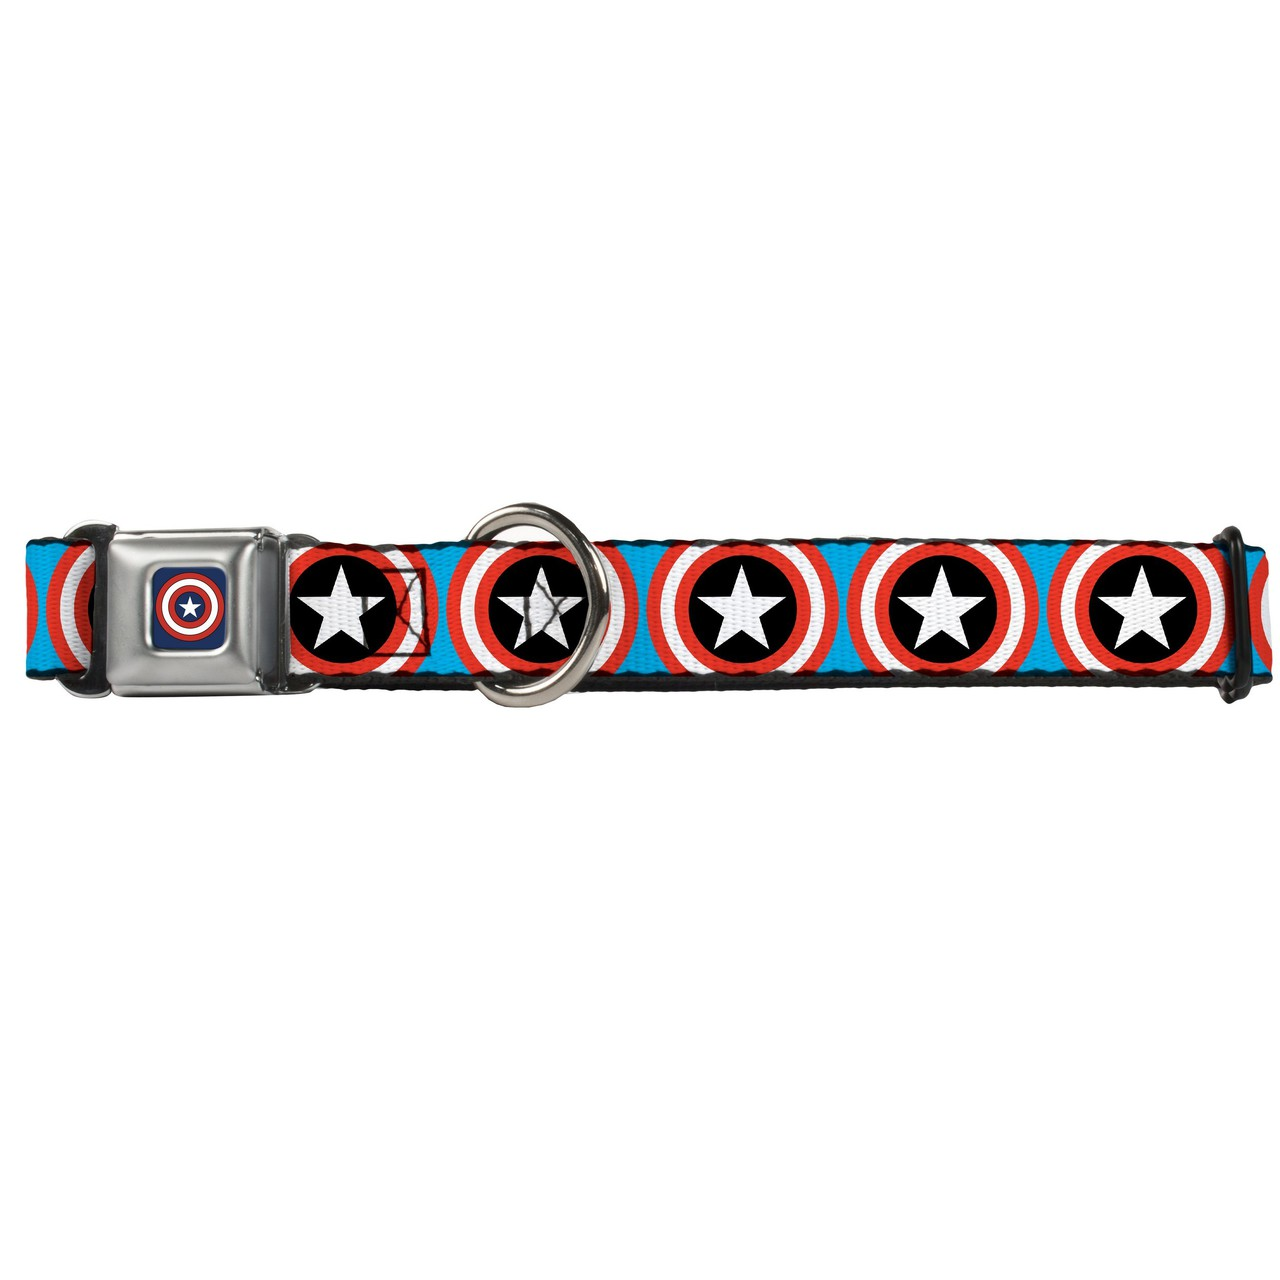 Hot Dog Captain America Shield Buckle-Down Seat Belt Buck...